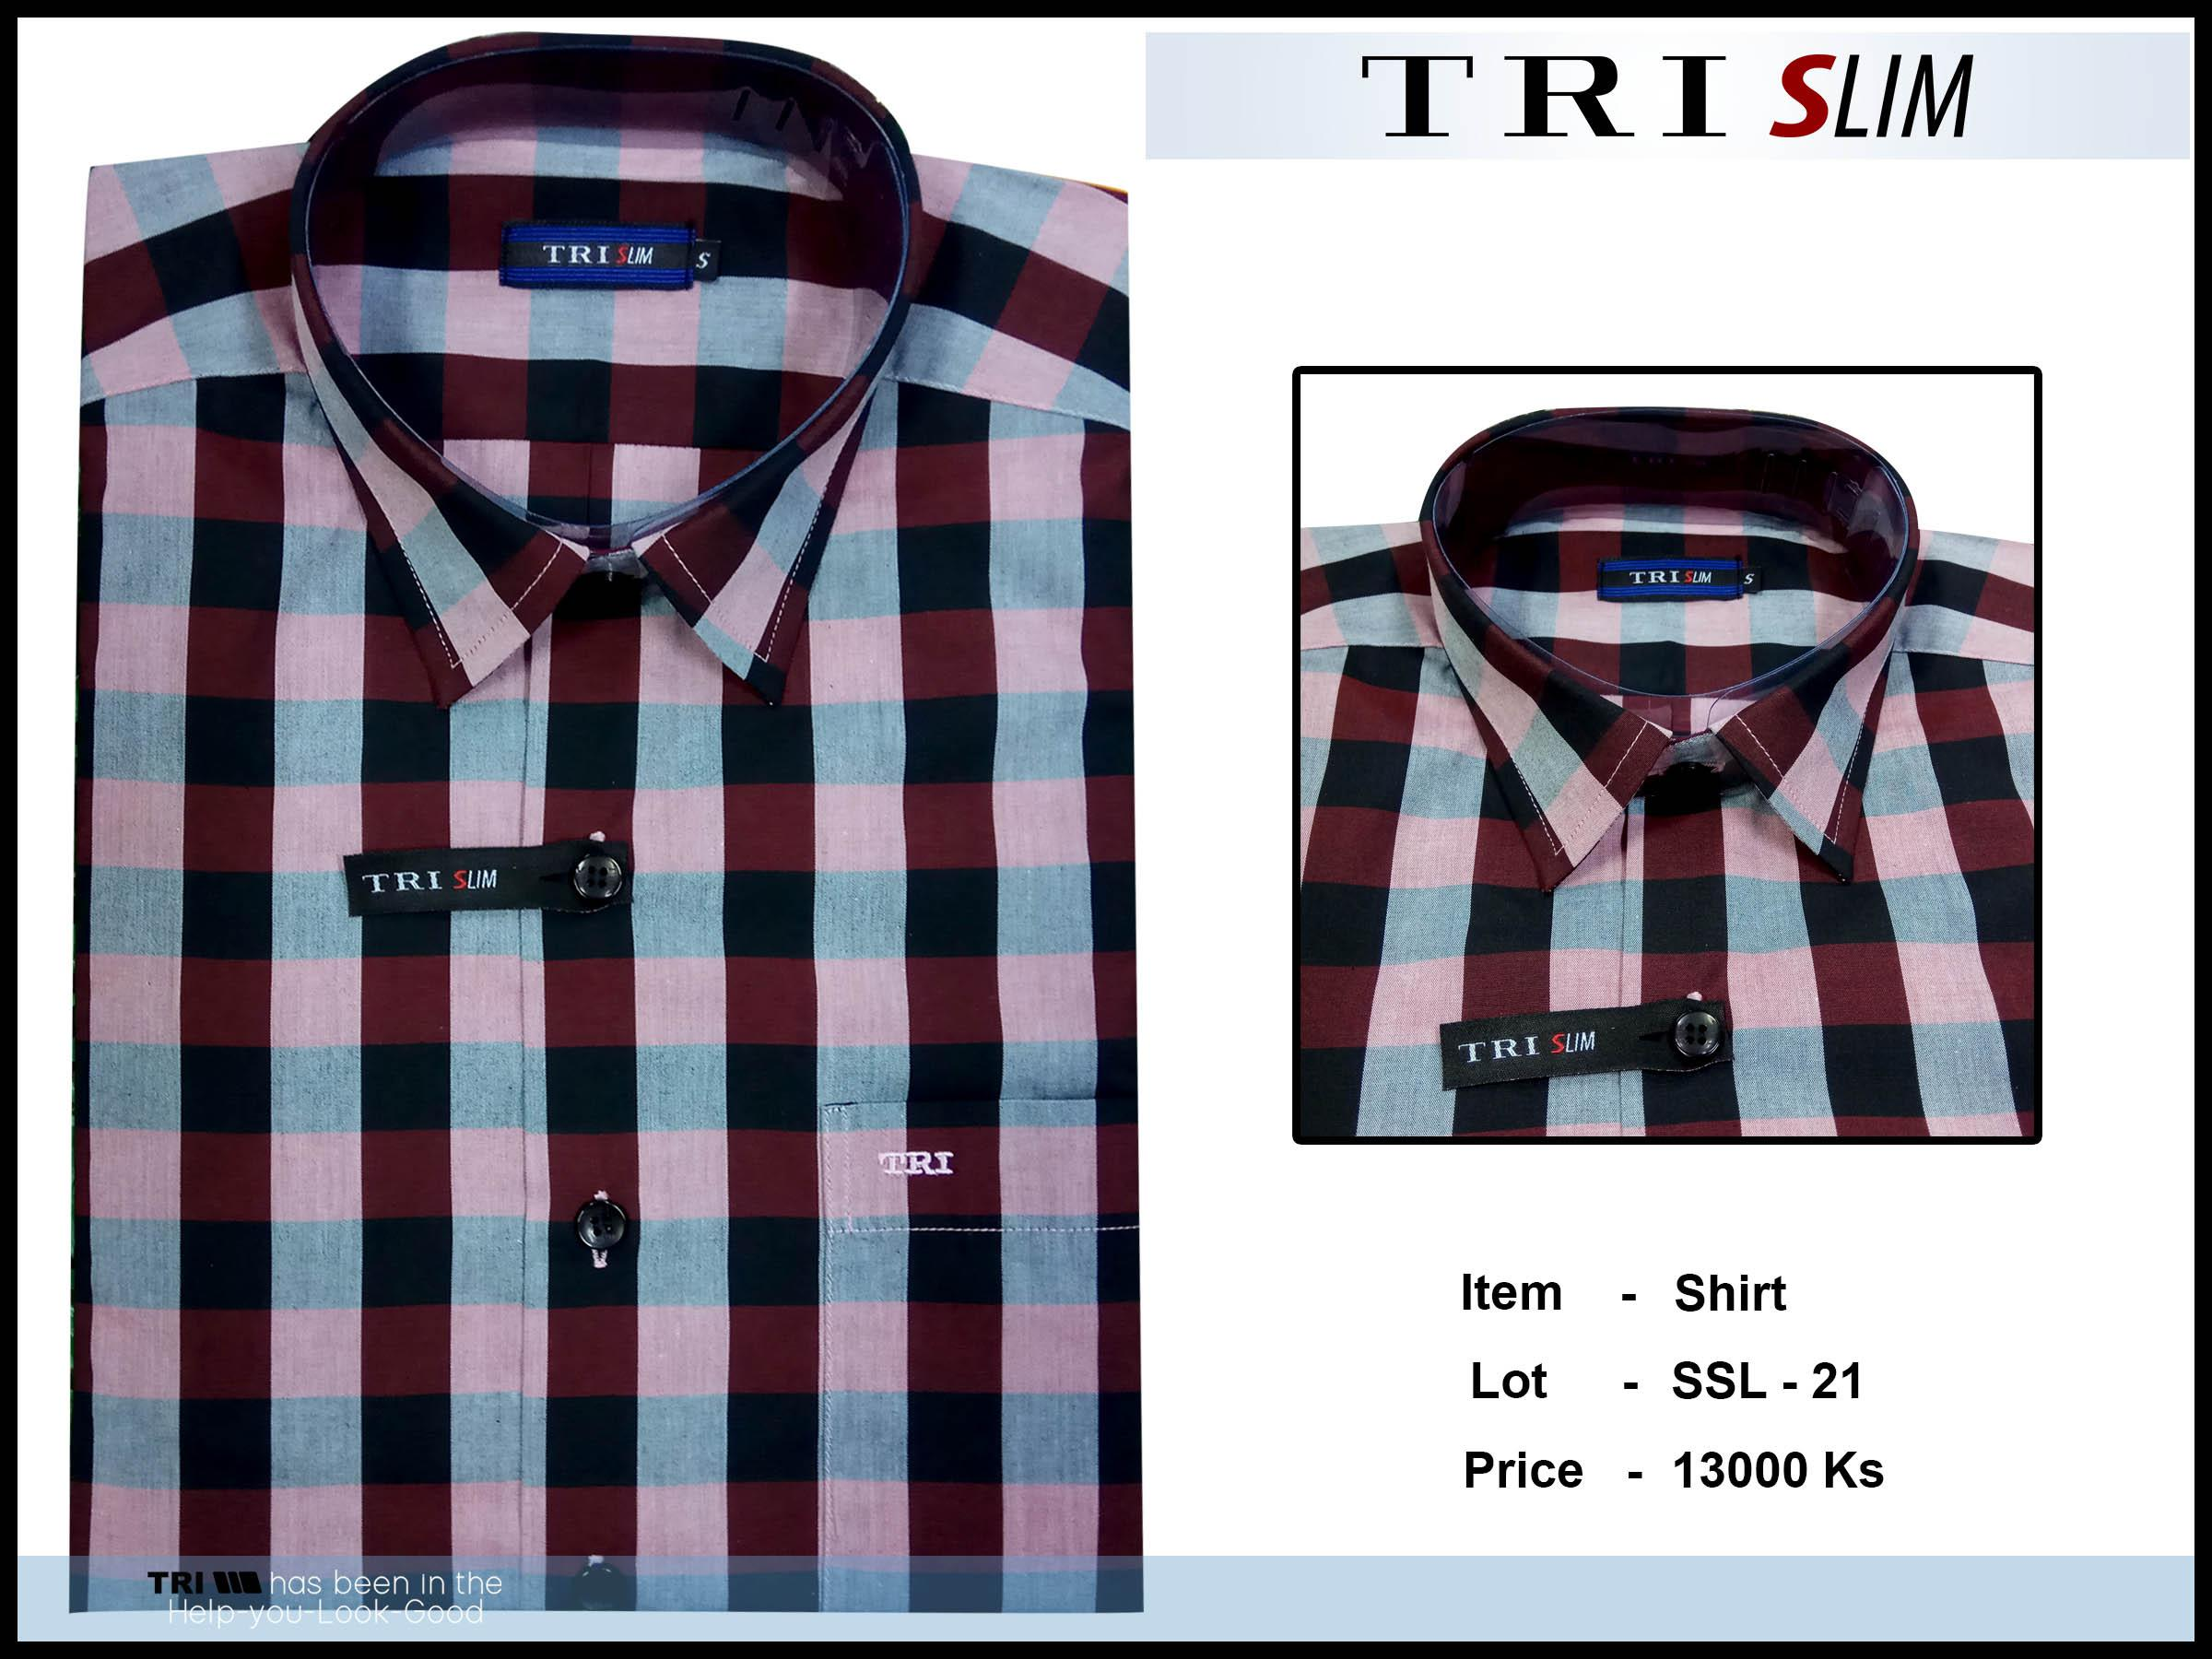 Tri Slim Shirt SSL - 21 - 12